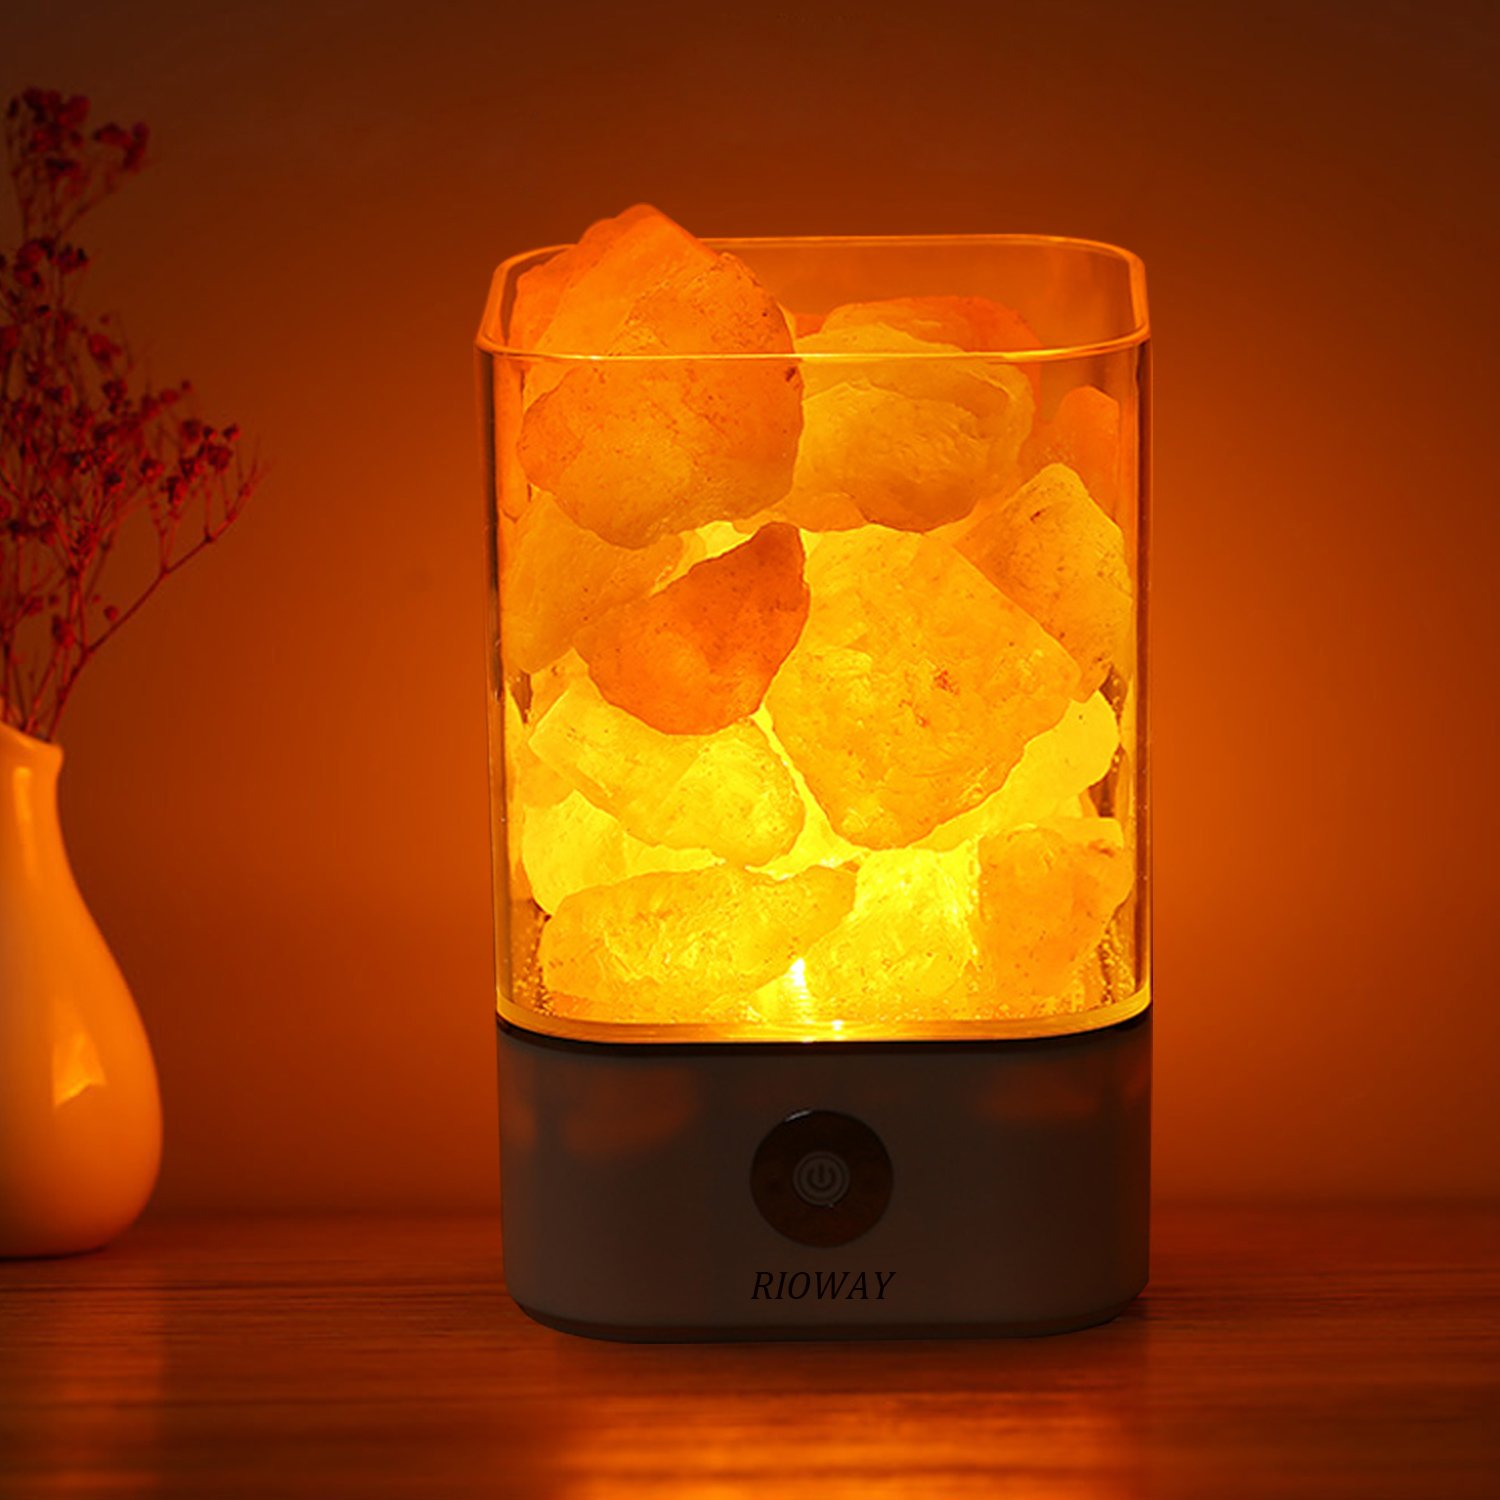 Himalayan Salt Lamp, Rioway Himalayan Pink Salt Rock Lamp with 7 Colorful Night Light, Dimmer Control, Air Purifying Ionic Natural Salt Crystal Lamp, Best Gift Idea